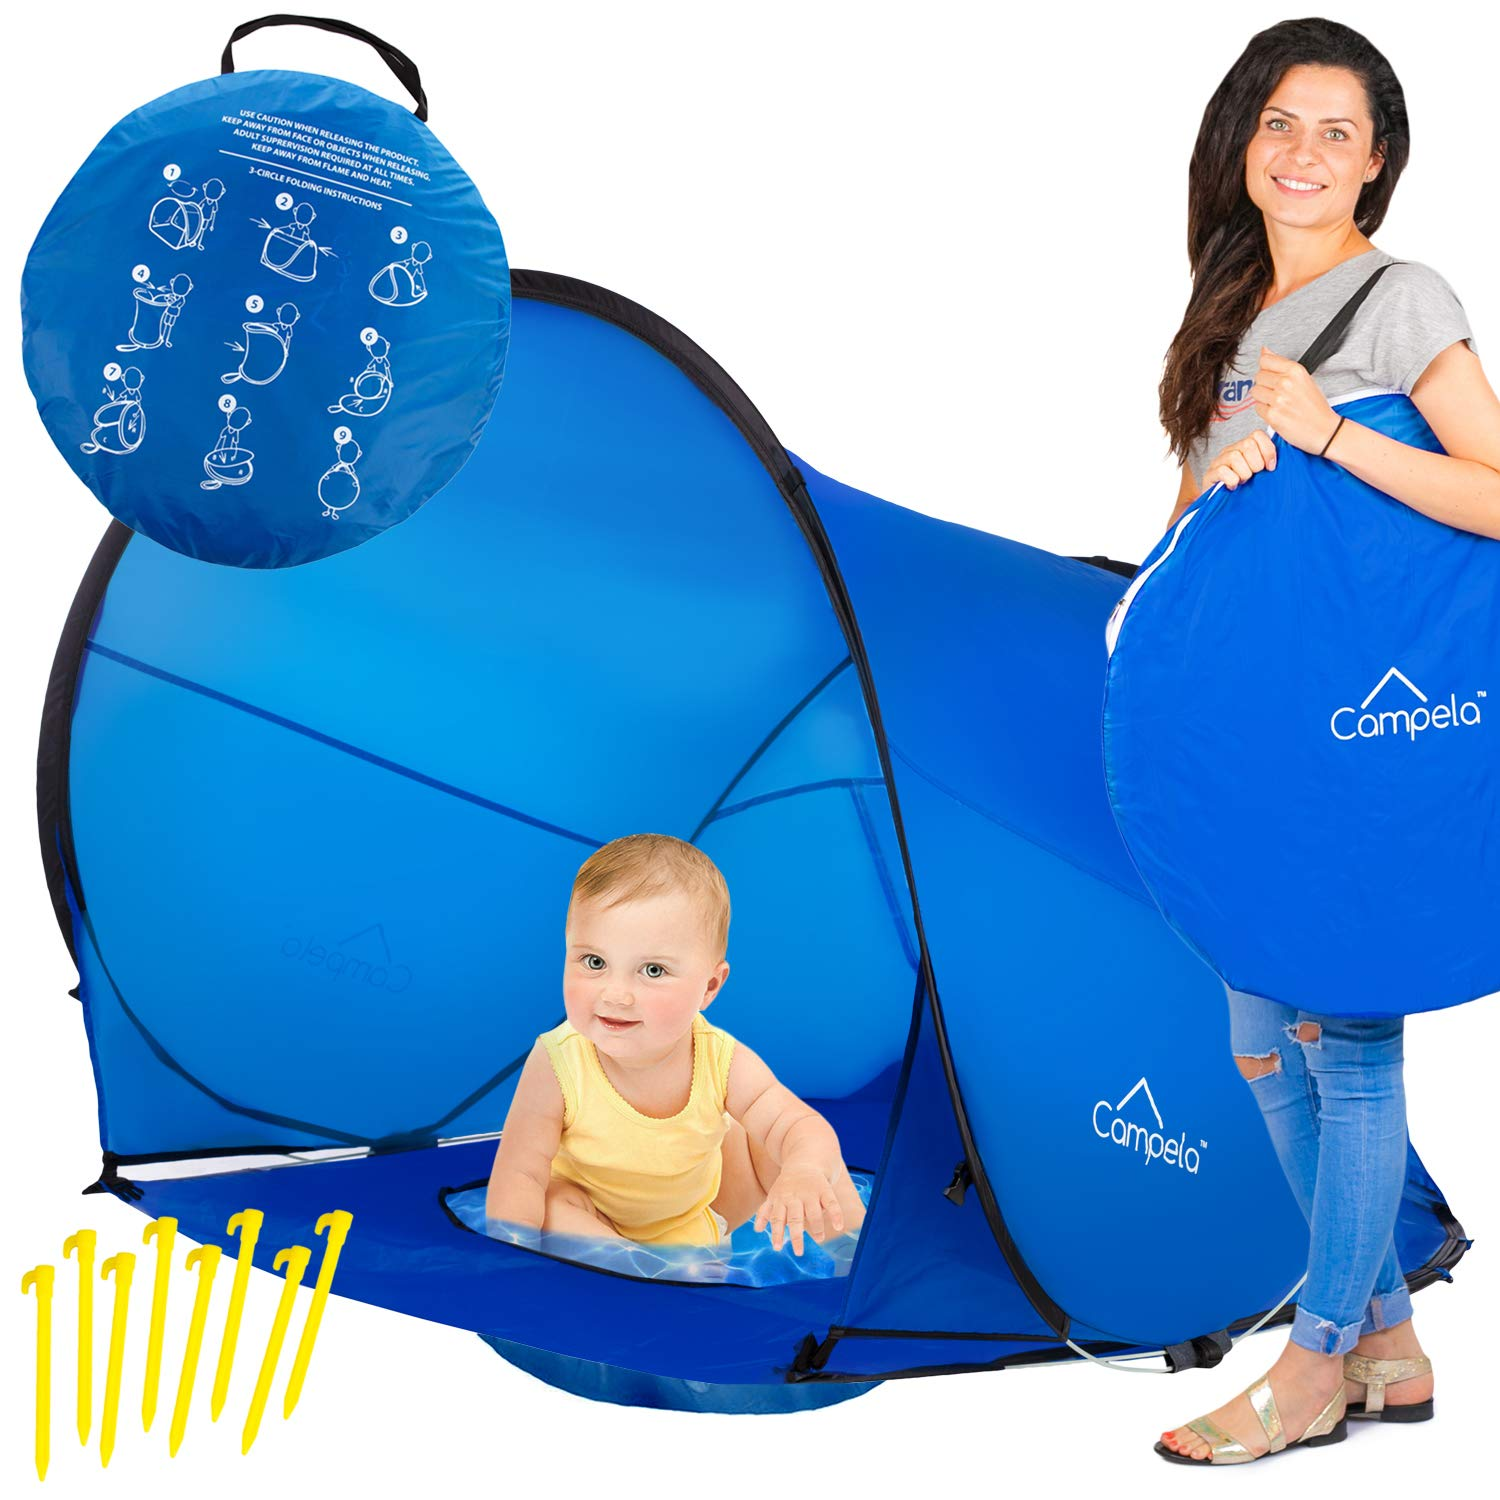 9c1912030 Amazon.com : Campela Baby Beach Tent UV (with Pool) - Pop Up Sun Shelter UV  Protection Beach Shade for Toddler, Infant and Family Gear : Sports &  Outdoors